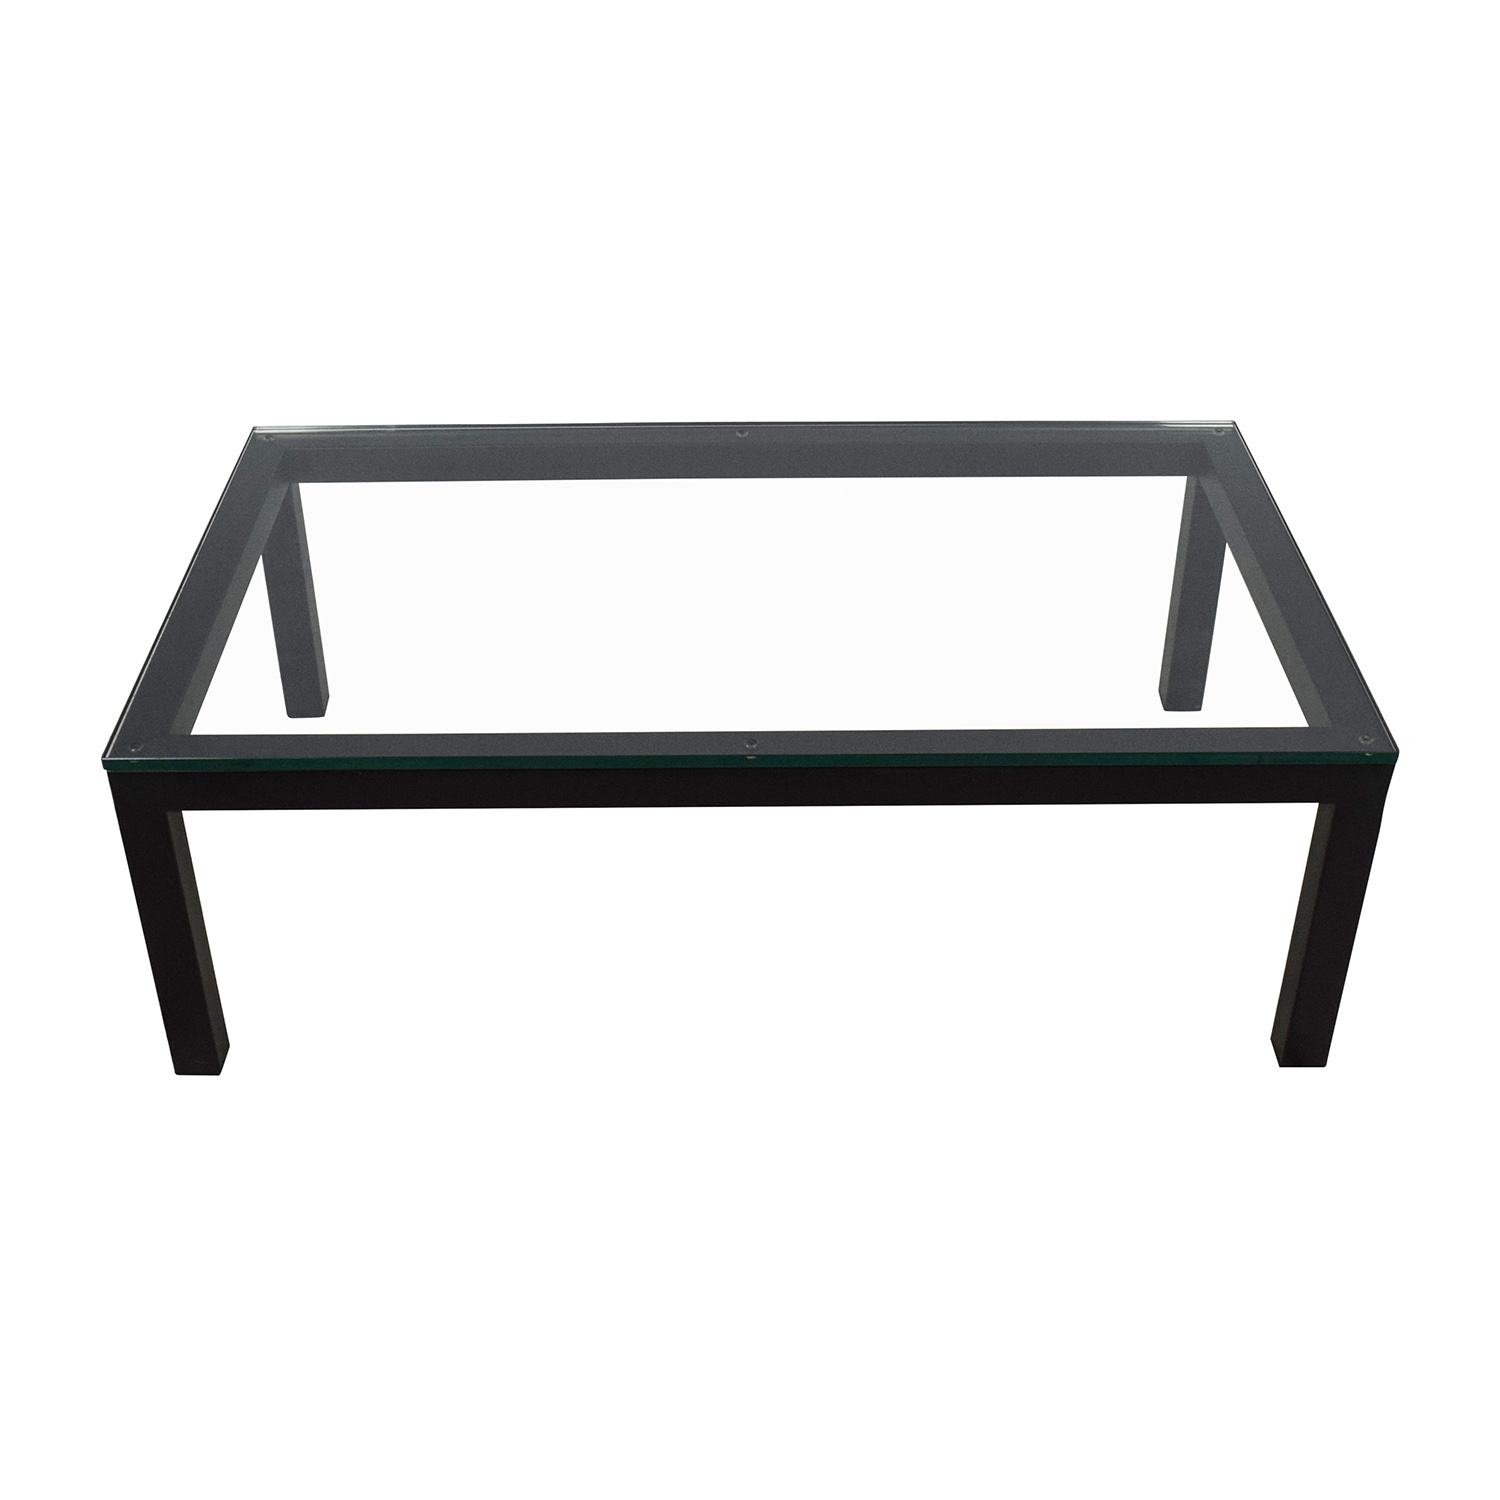 ... Buy Crate And Barrel Crate U0026 Barrel Parsons Coffee Table Online ...